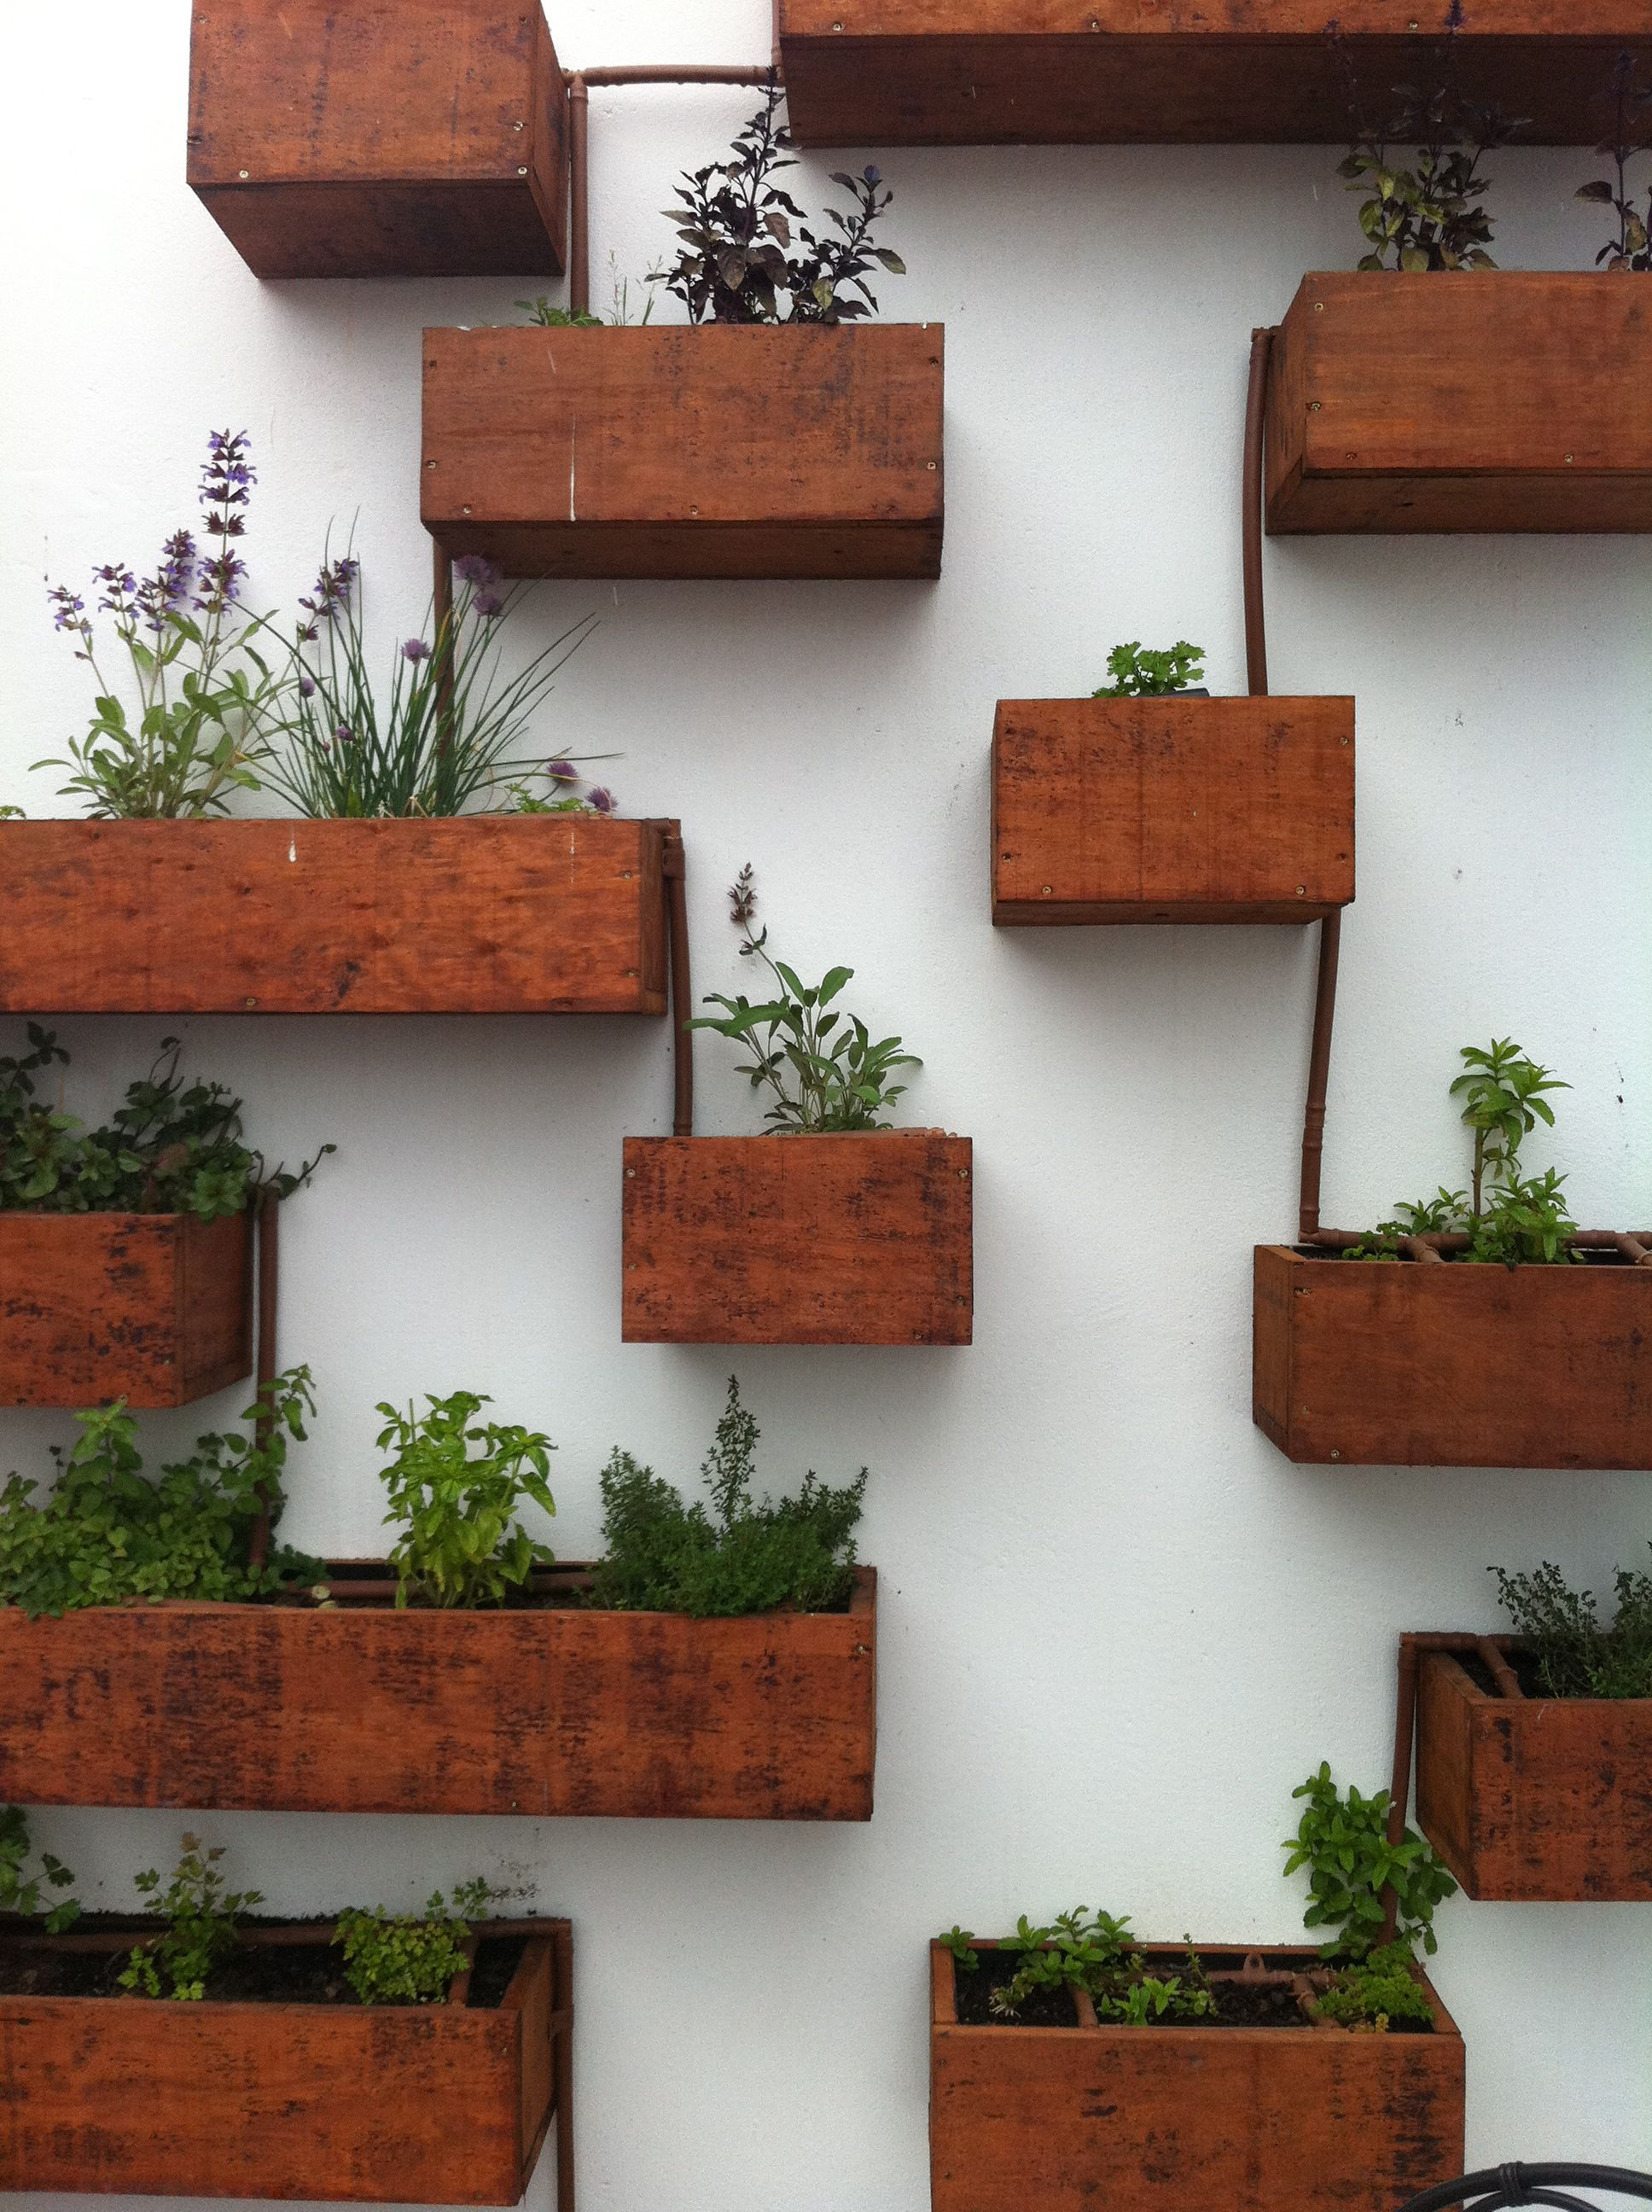 Indoor Wall Hanging Planters Wooden Boxes Herb